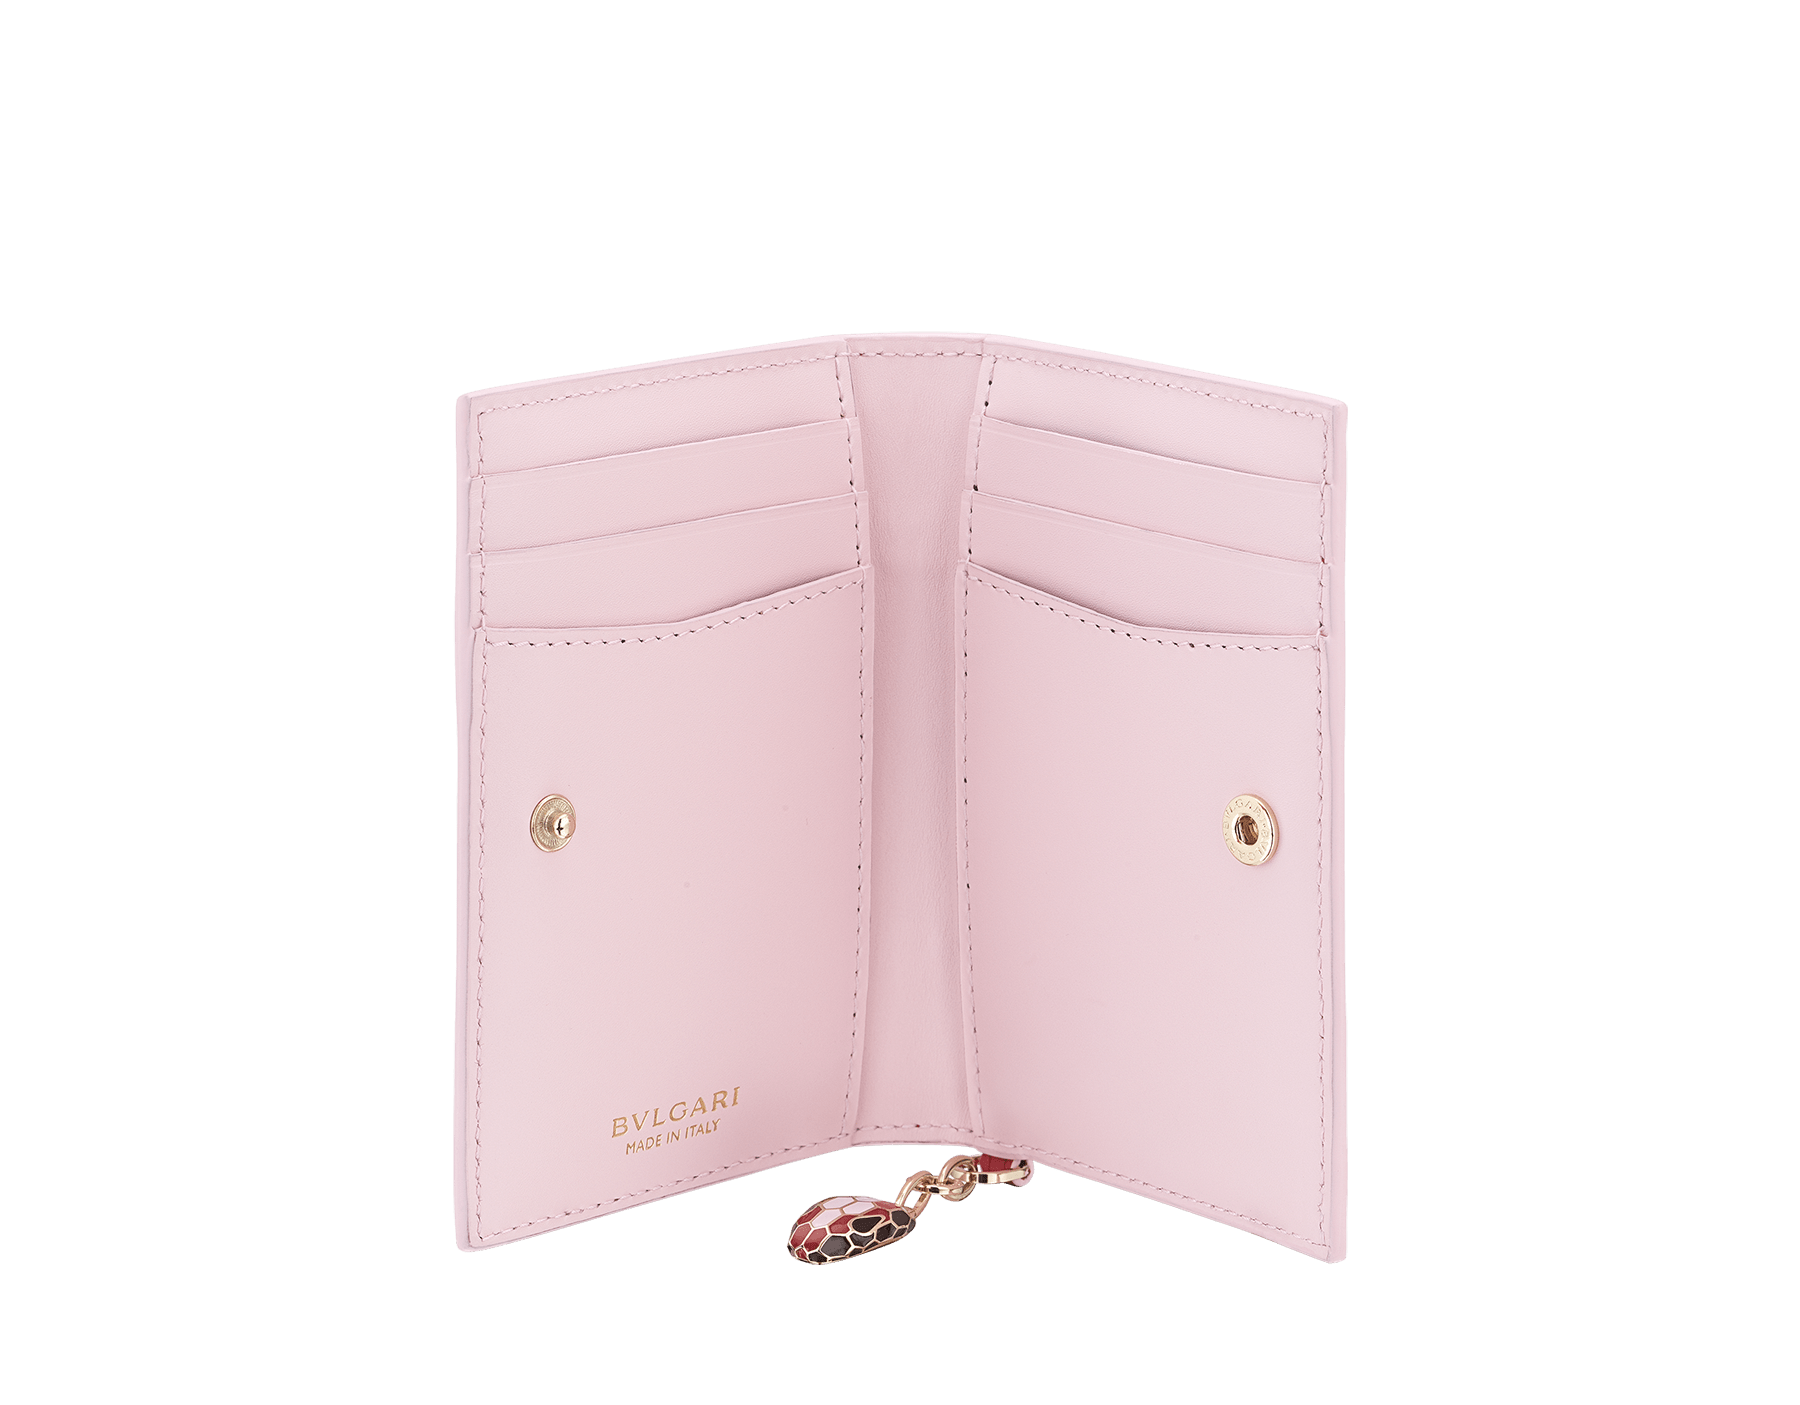 Serpenti Forever Celebration Edition folded credit card holder in carmine jasper and rosa di Francia calf leather. Snakehead charm with black, carmine jasper and rosa di Francia enamel, and black enamel eyes. 289553 image 2